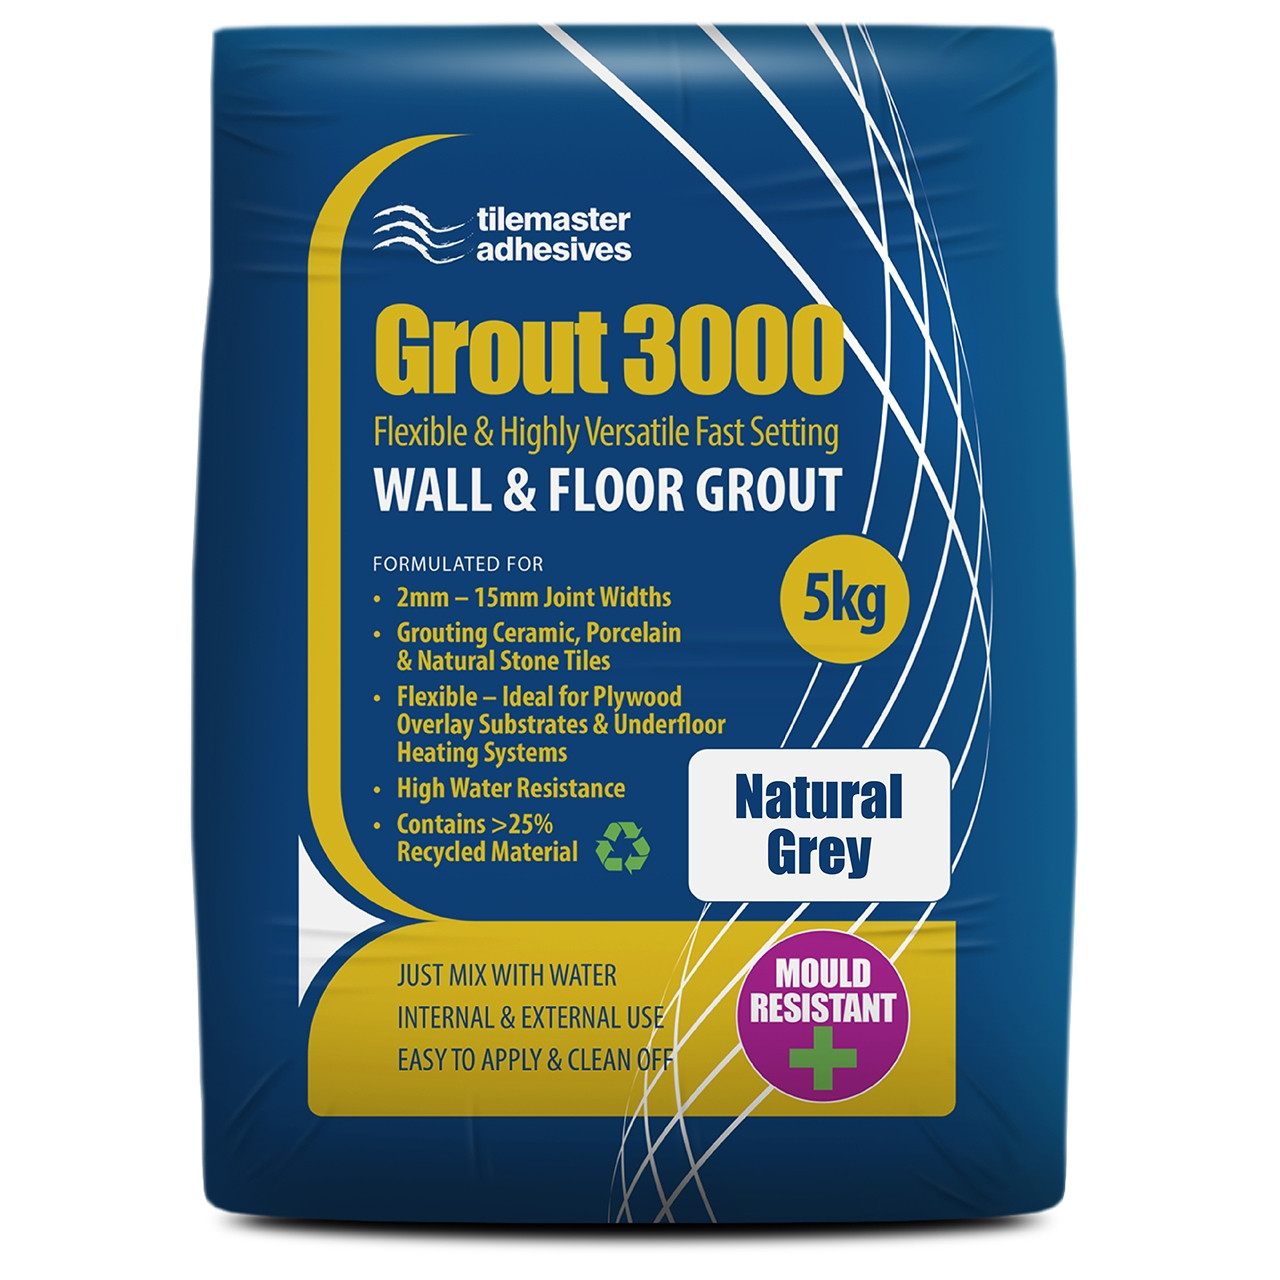 Tilemaster Grout 3000 - Natural Grey (5KG)